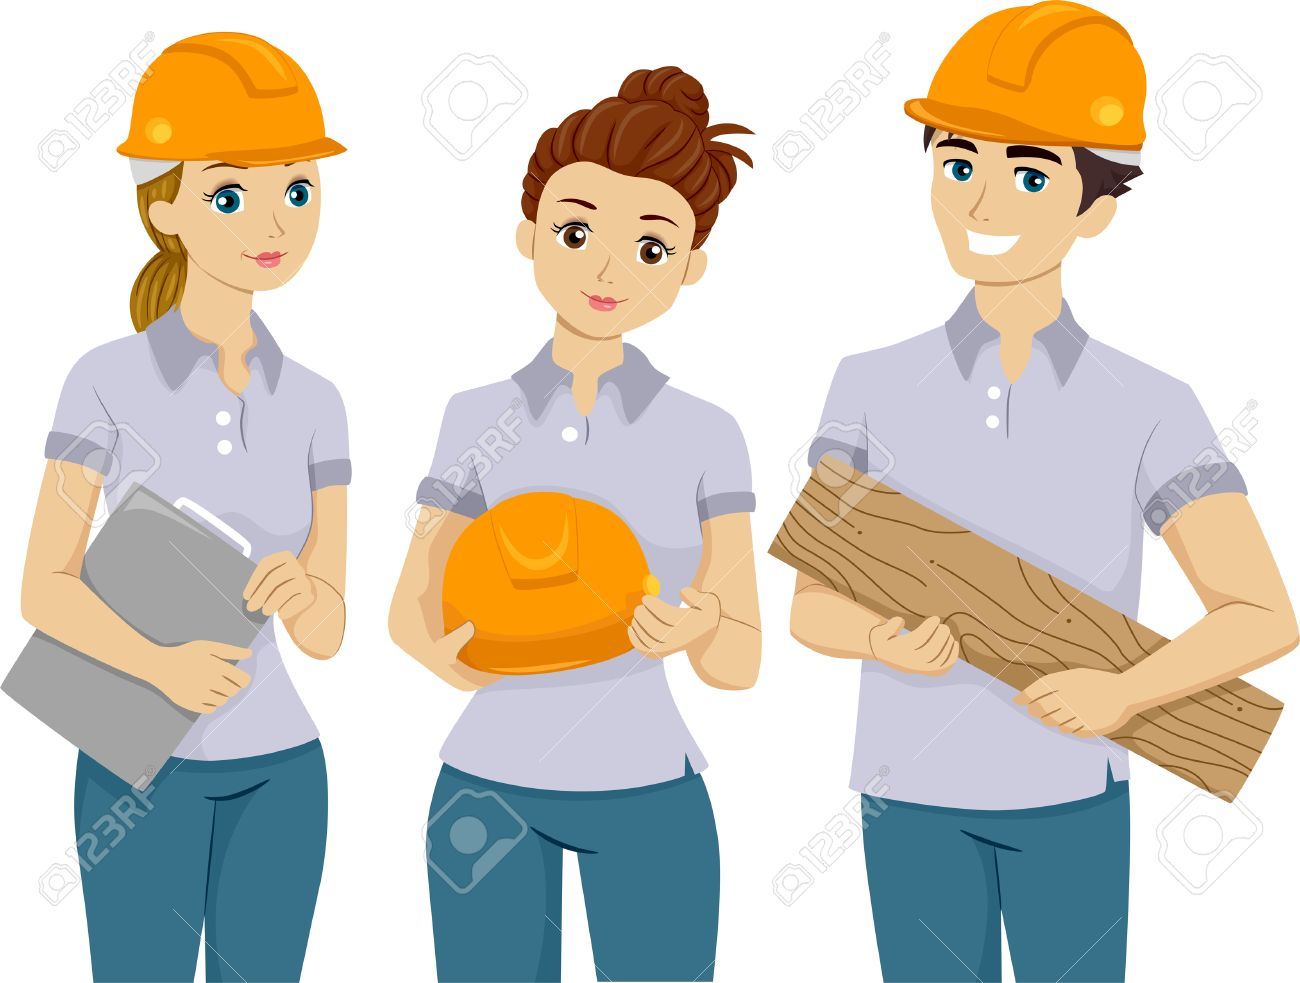 illustration of teens doing volunteer work royalty cliparts illustration of teens doing volunteer work stock vector 29214457